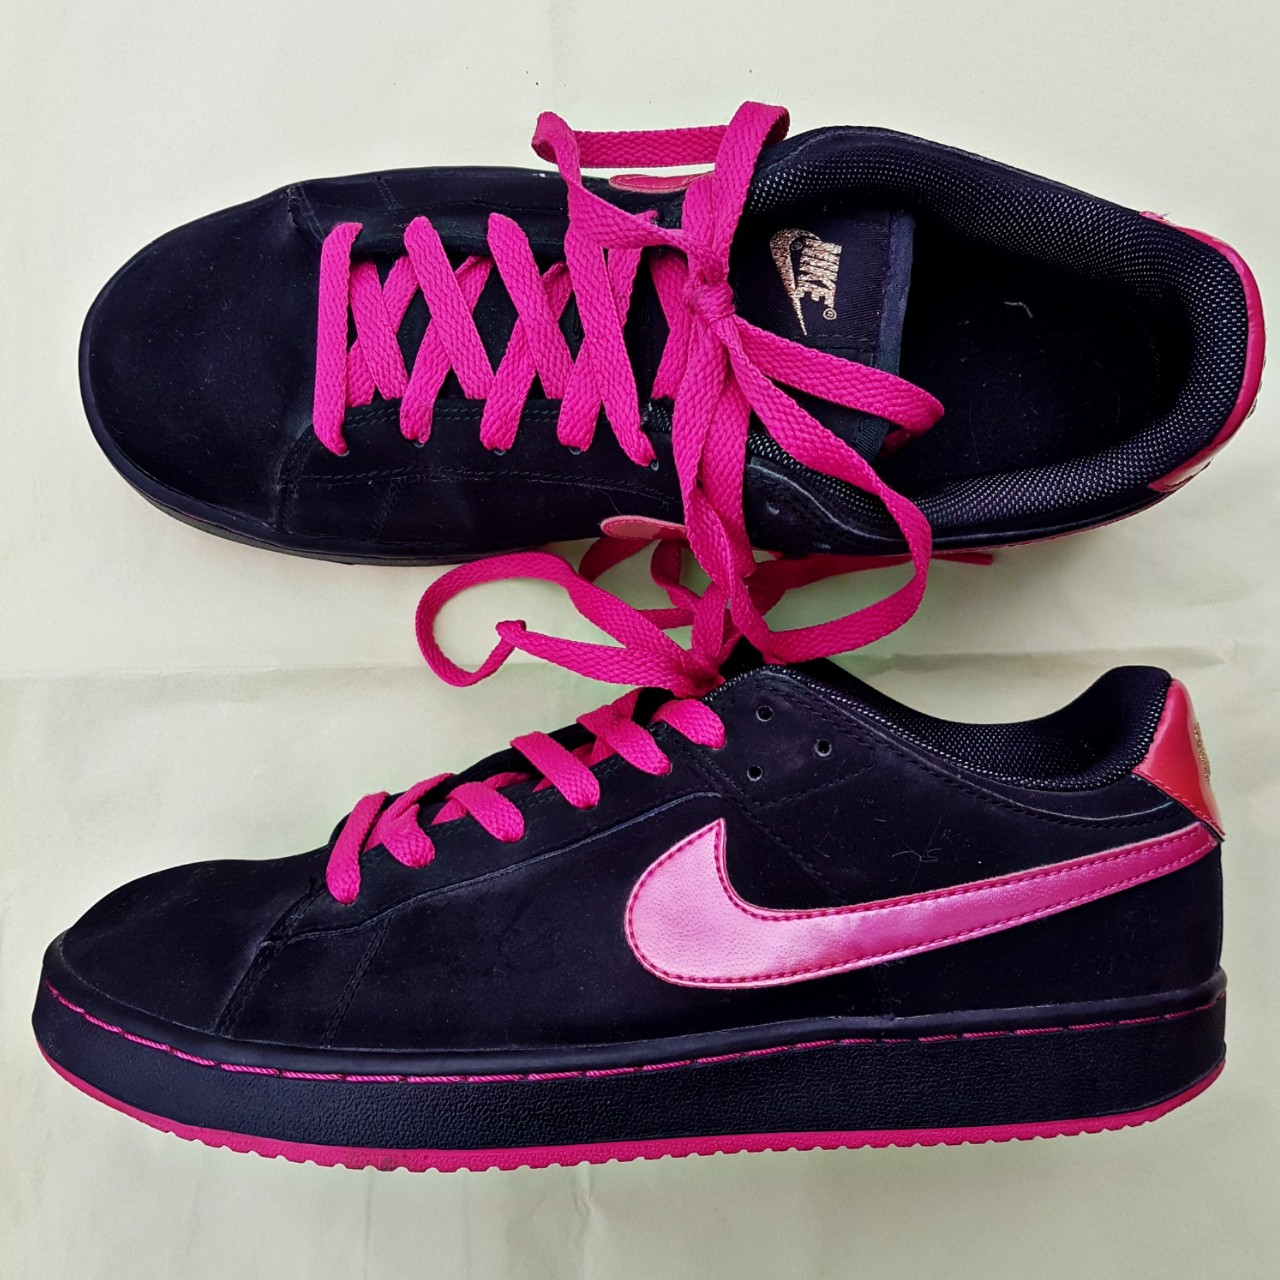 black and pink Nike trainers in Size UK